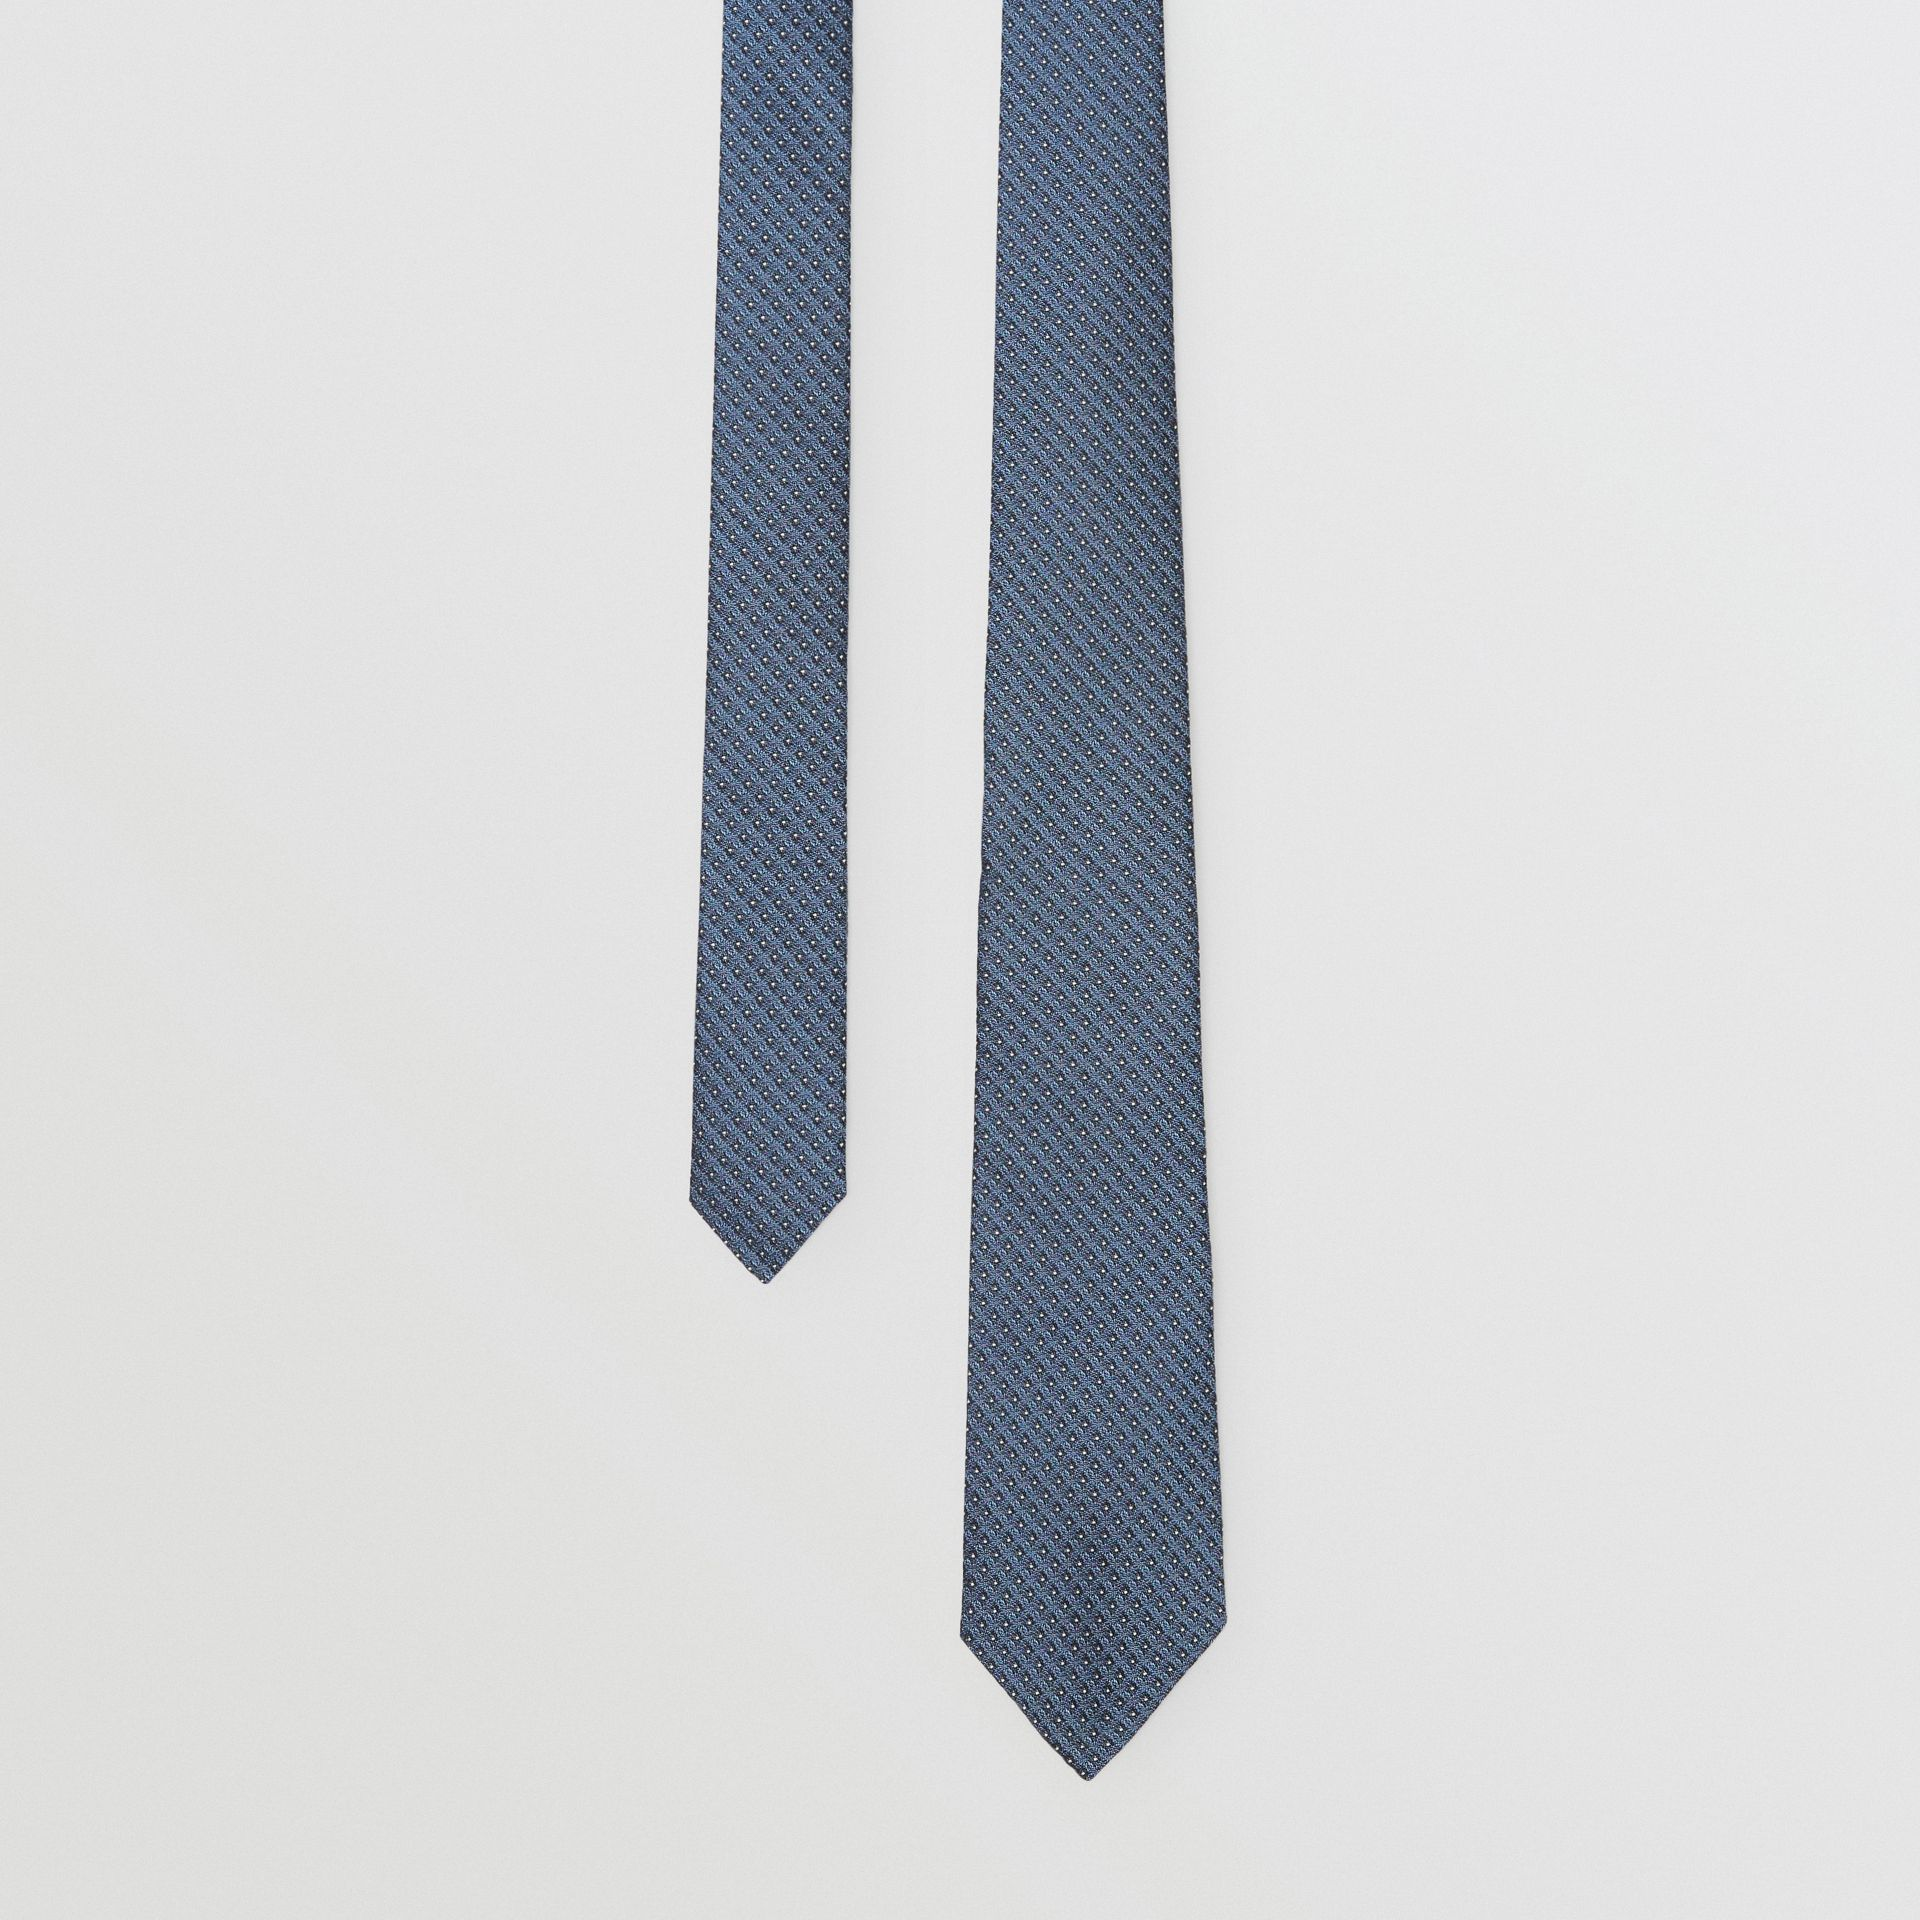 Classic Cut Micro Dot Silk Jacquard Tie in Porcelain Blue - Men | Burberry Singapore - gallery image 0